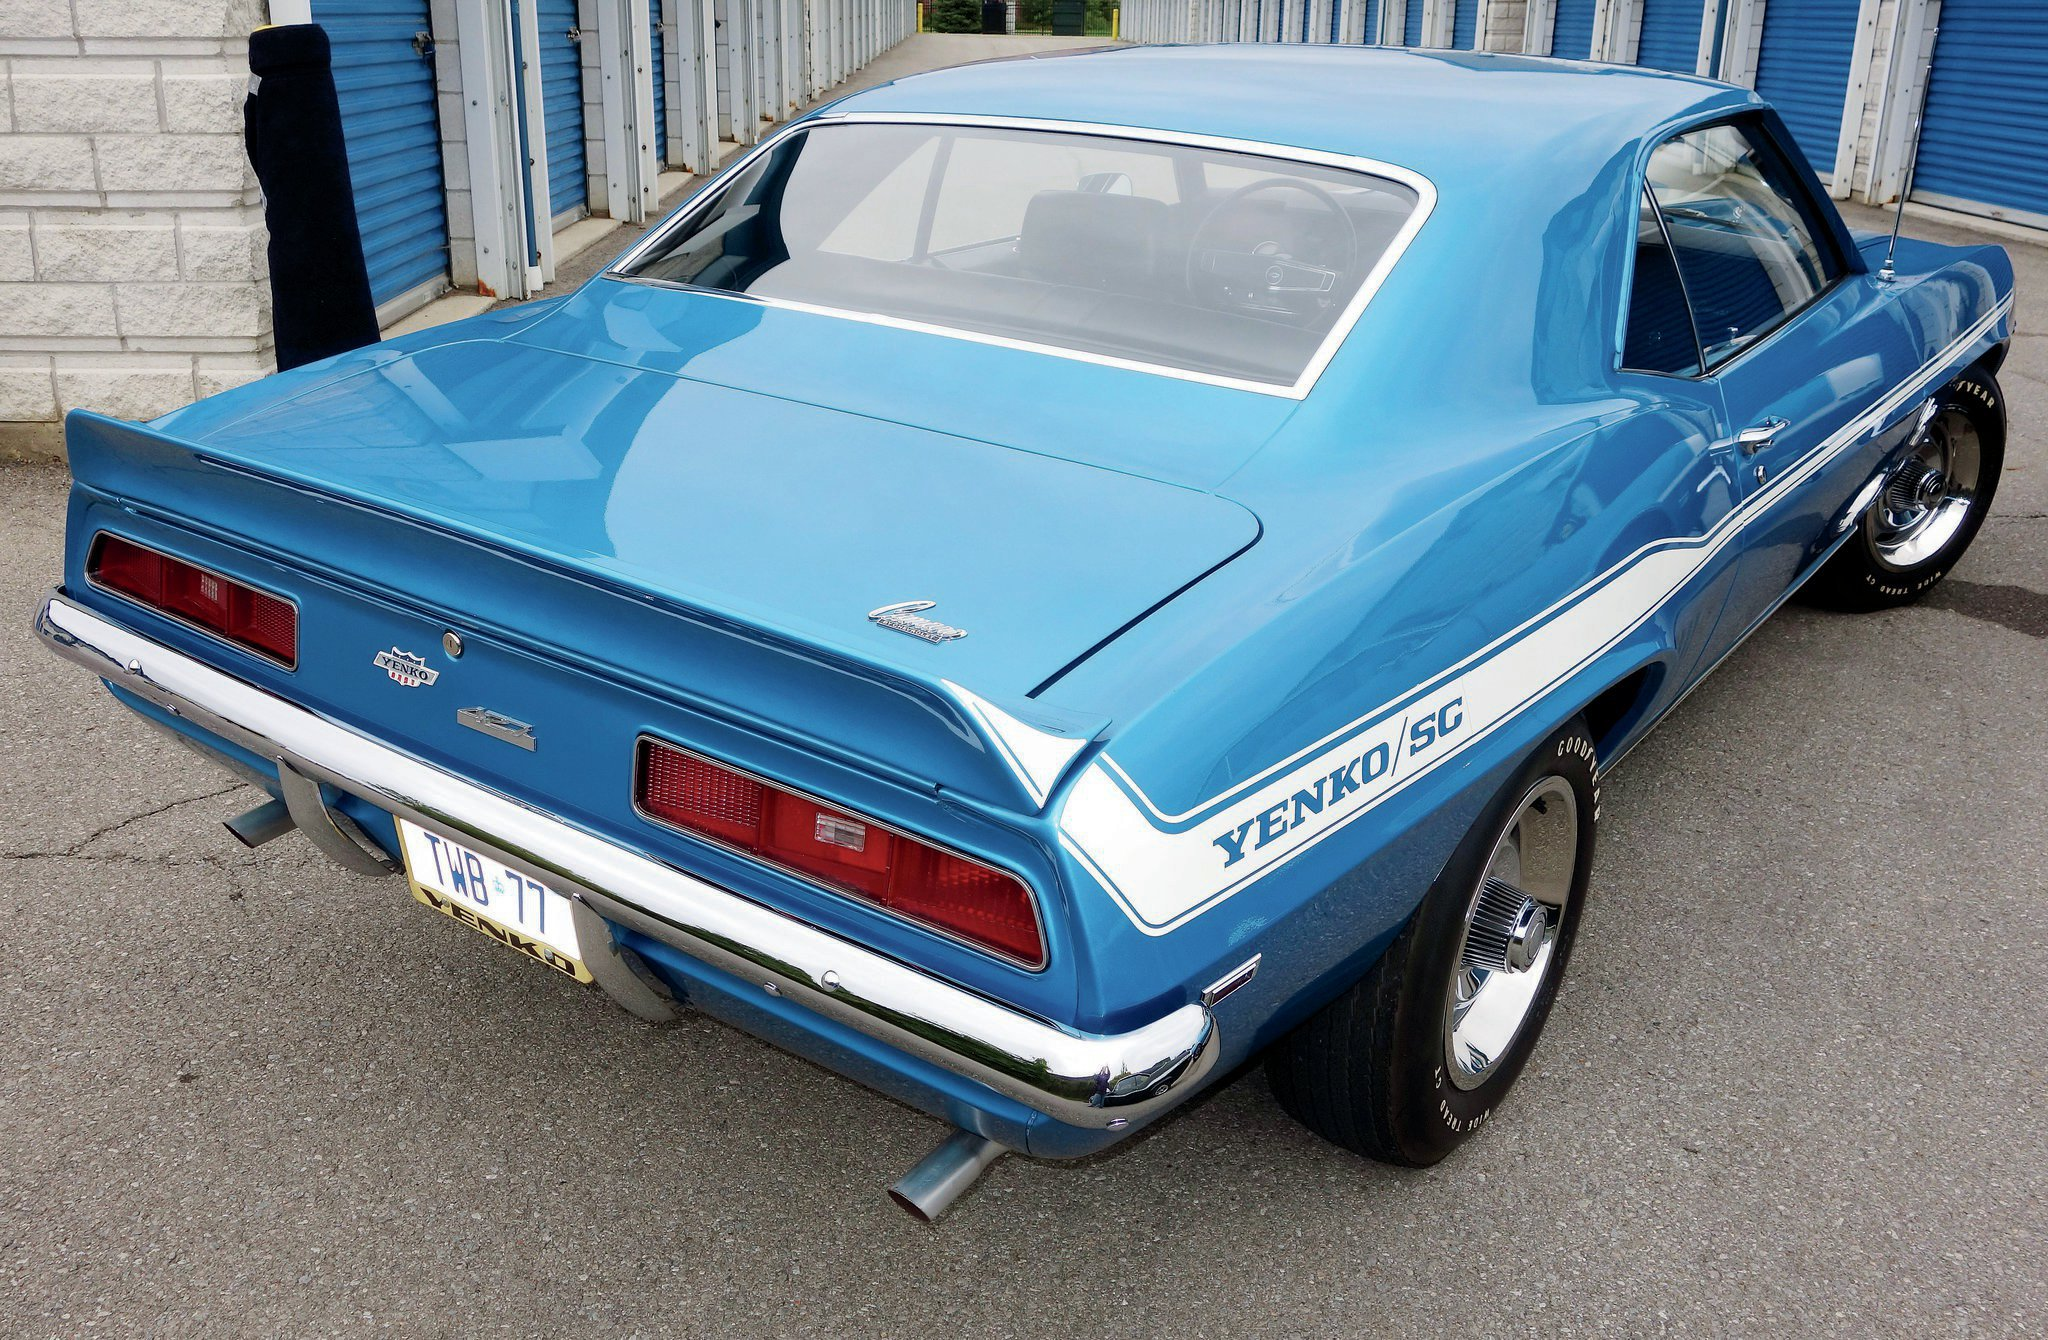 The Yenko/SC stripe ran down the side of the car, tying in nicely to the rear spoiler. All 1969 Yenko Super Camaros had both front and rear spoilers. The Yenko and 427 emblems were part of the Yenko conversion. For most of the 1969 cars, those emblems were located using the two holes from the factory Chevy bowtie emblem, explaining the staggered locations.